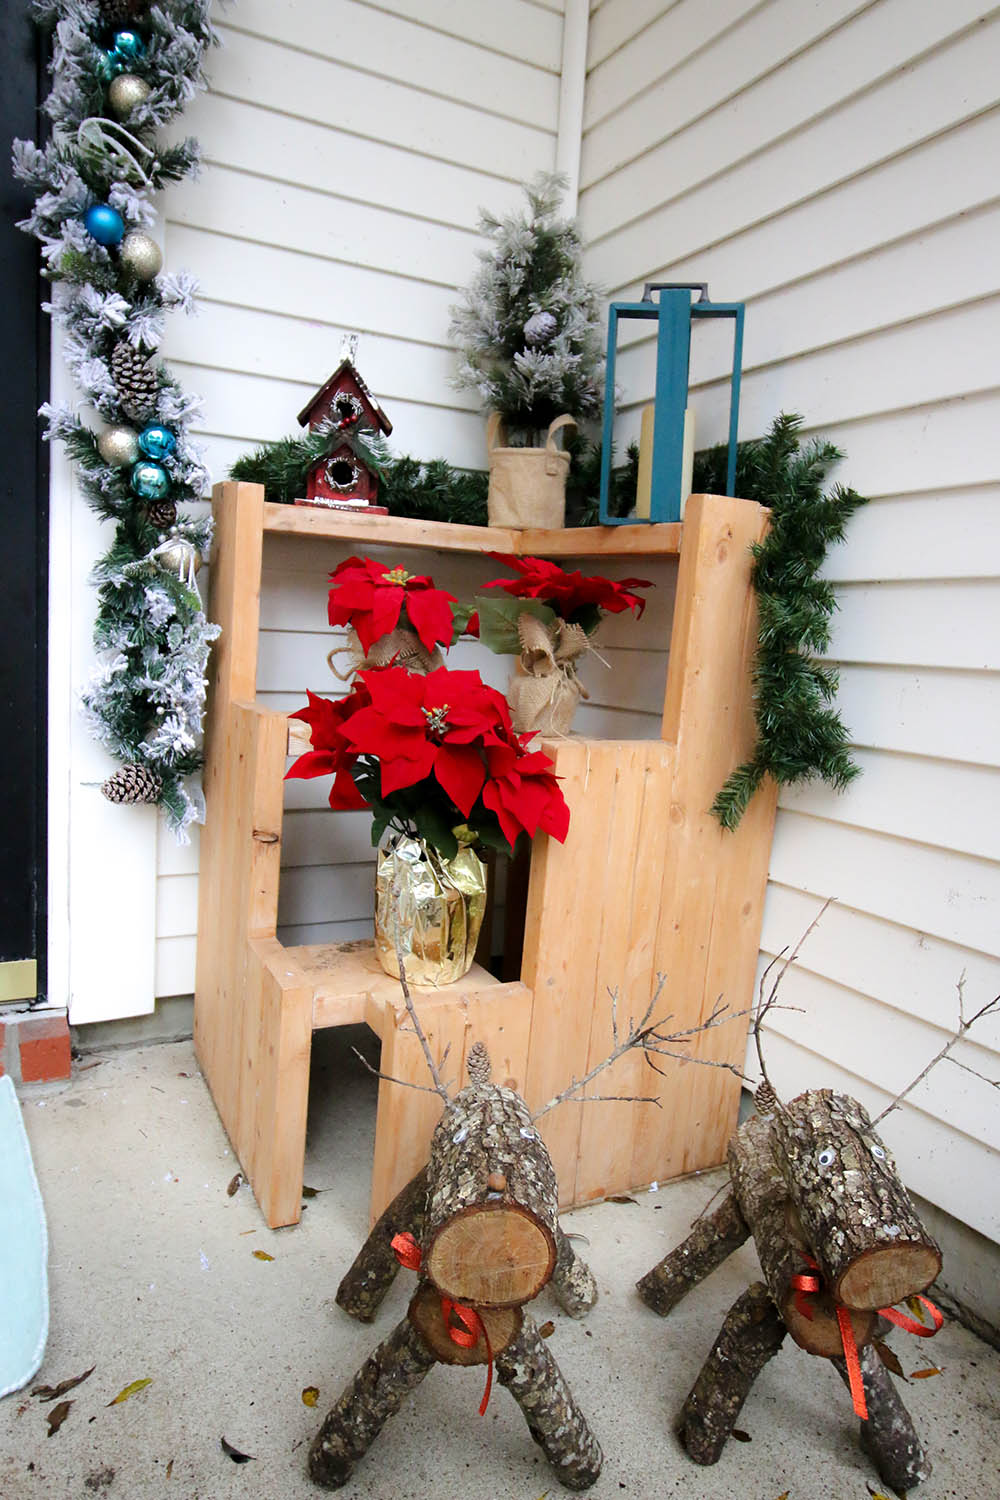 Two DIY wood slice reindeer standing in front of a three-tiered plant stand decorated with garland and poinsettias.